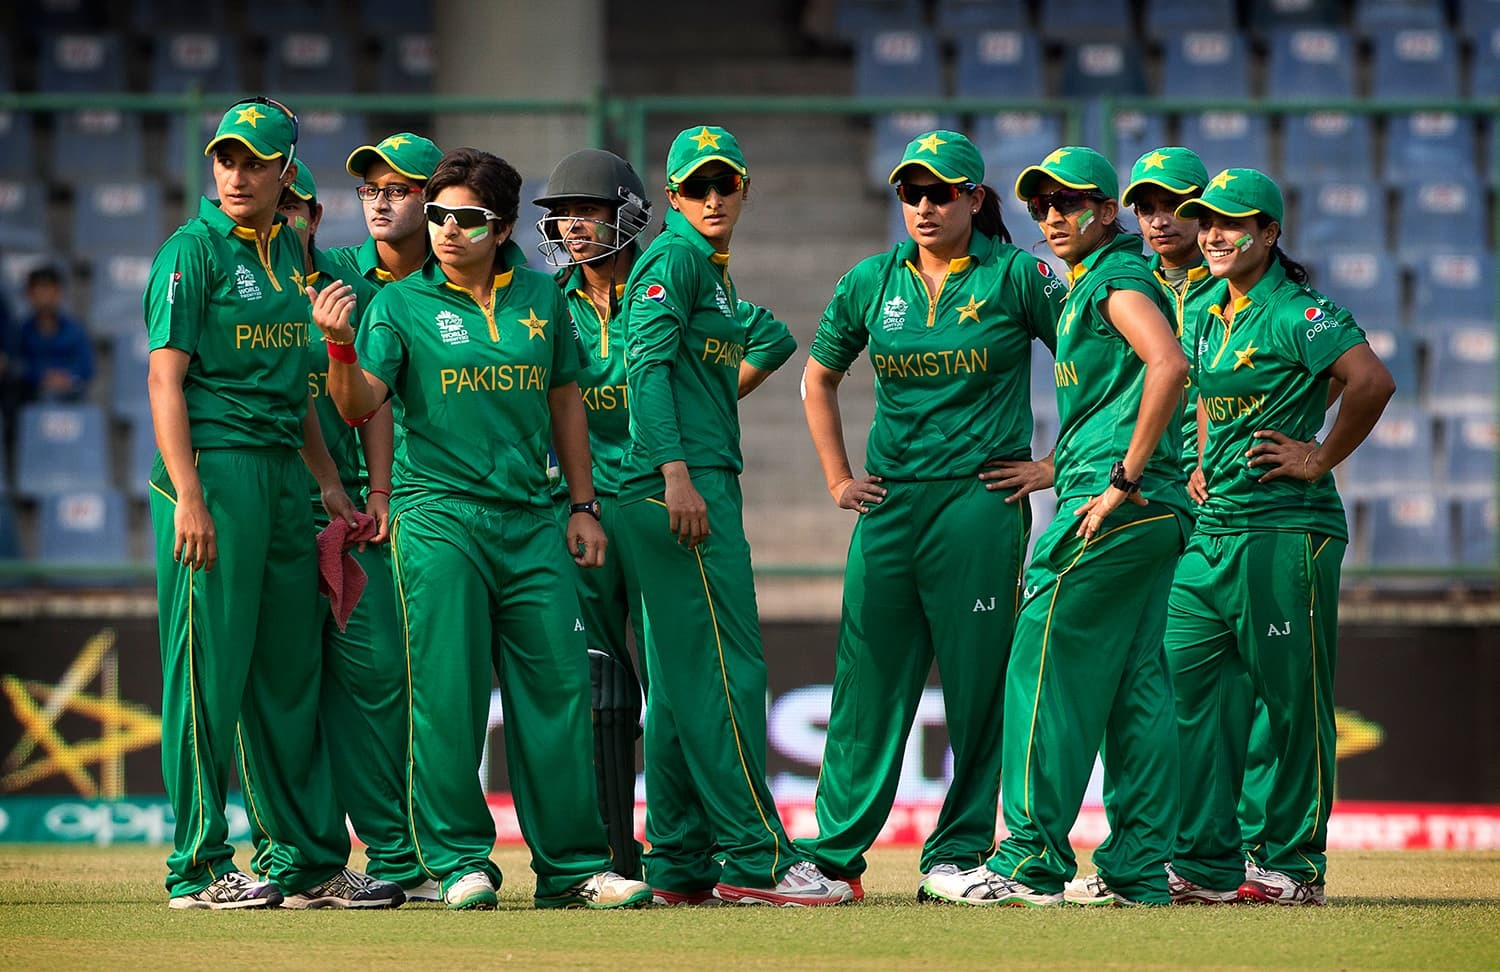 Relationship with coach suffered after I played Diana Baig in WC, Sana Mir says